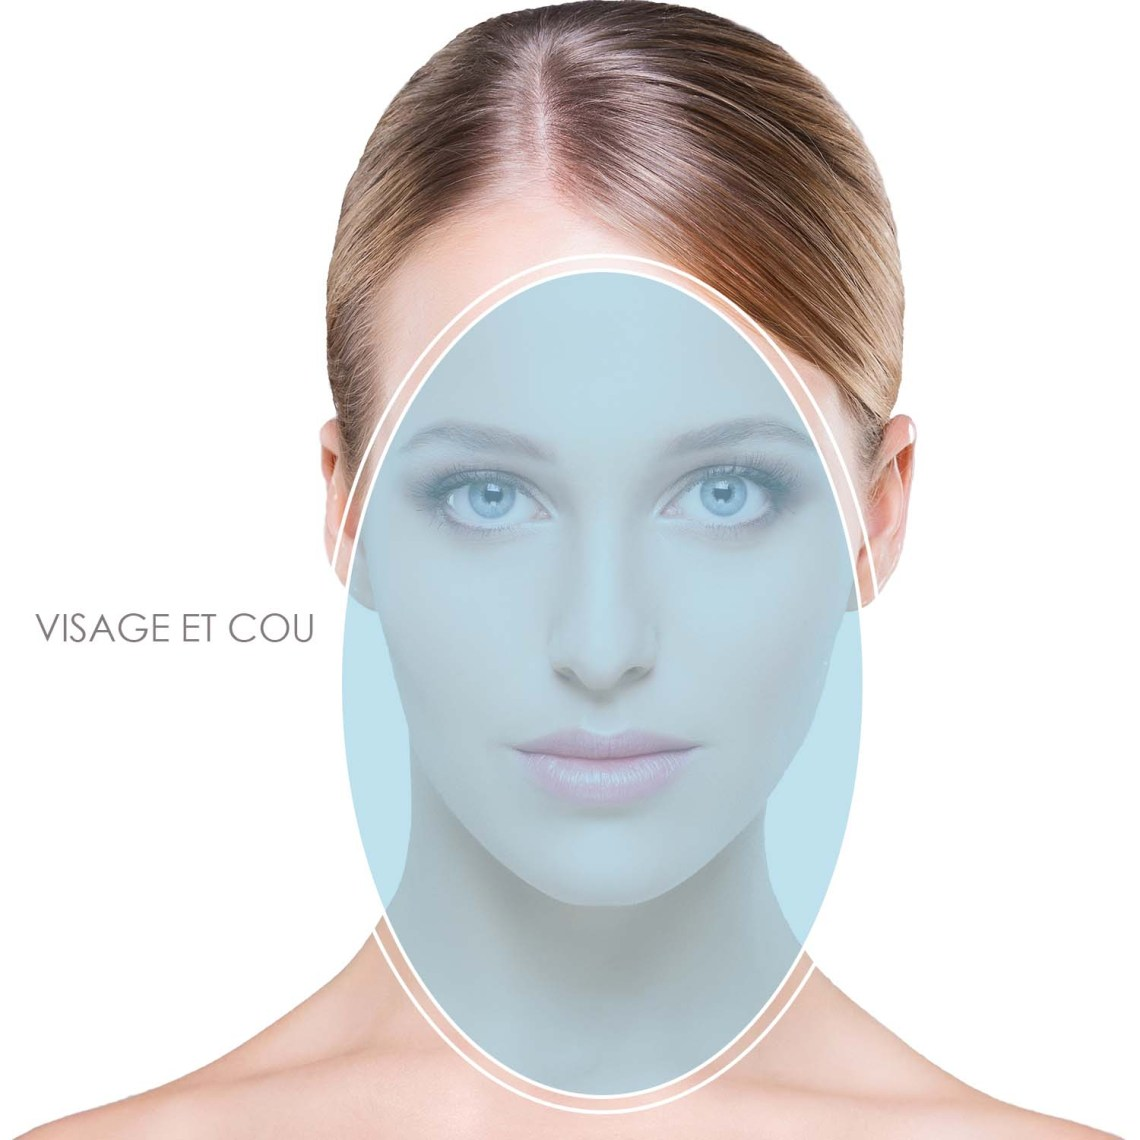 hydrafacial-facial-neck